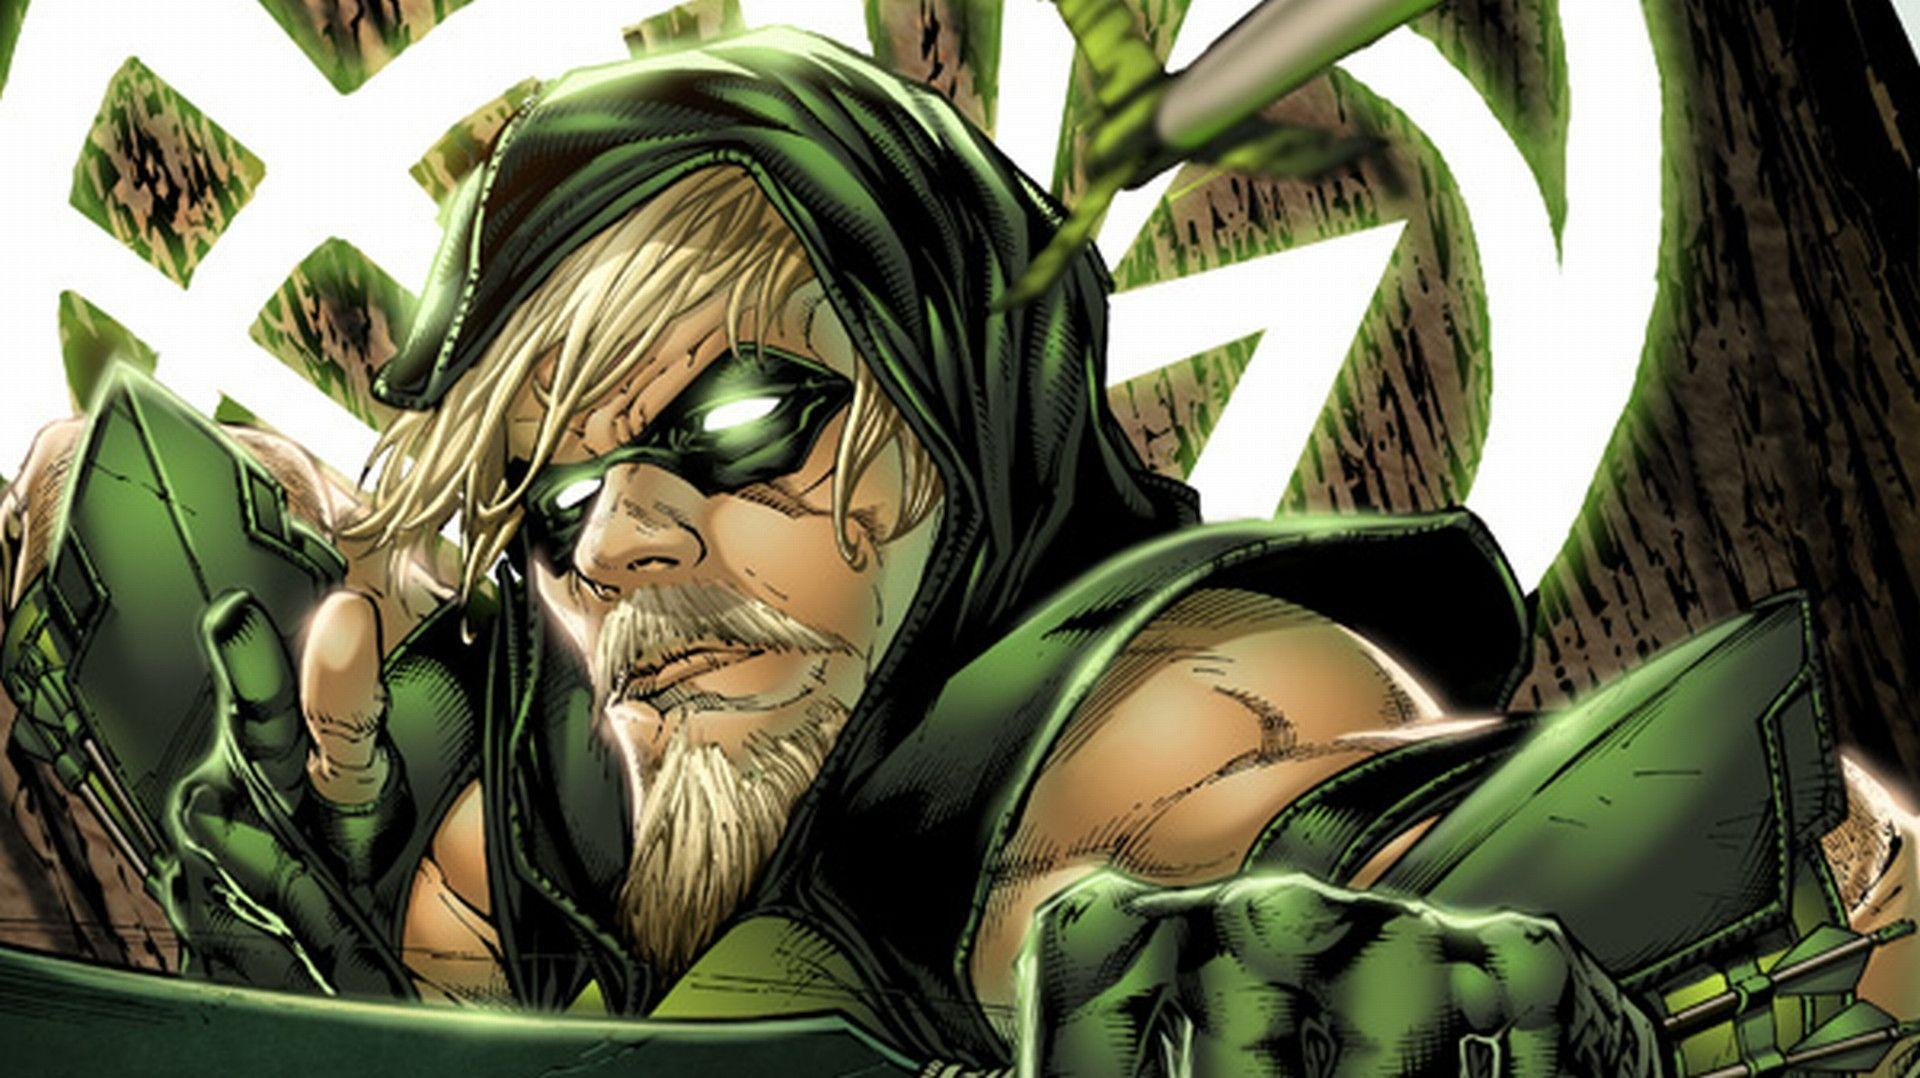 Wallpapers For > Green Arrow Iphone 5 Wallpapers